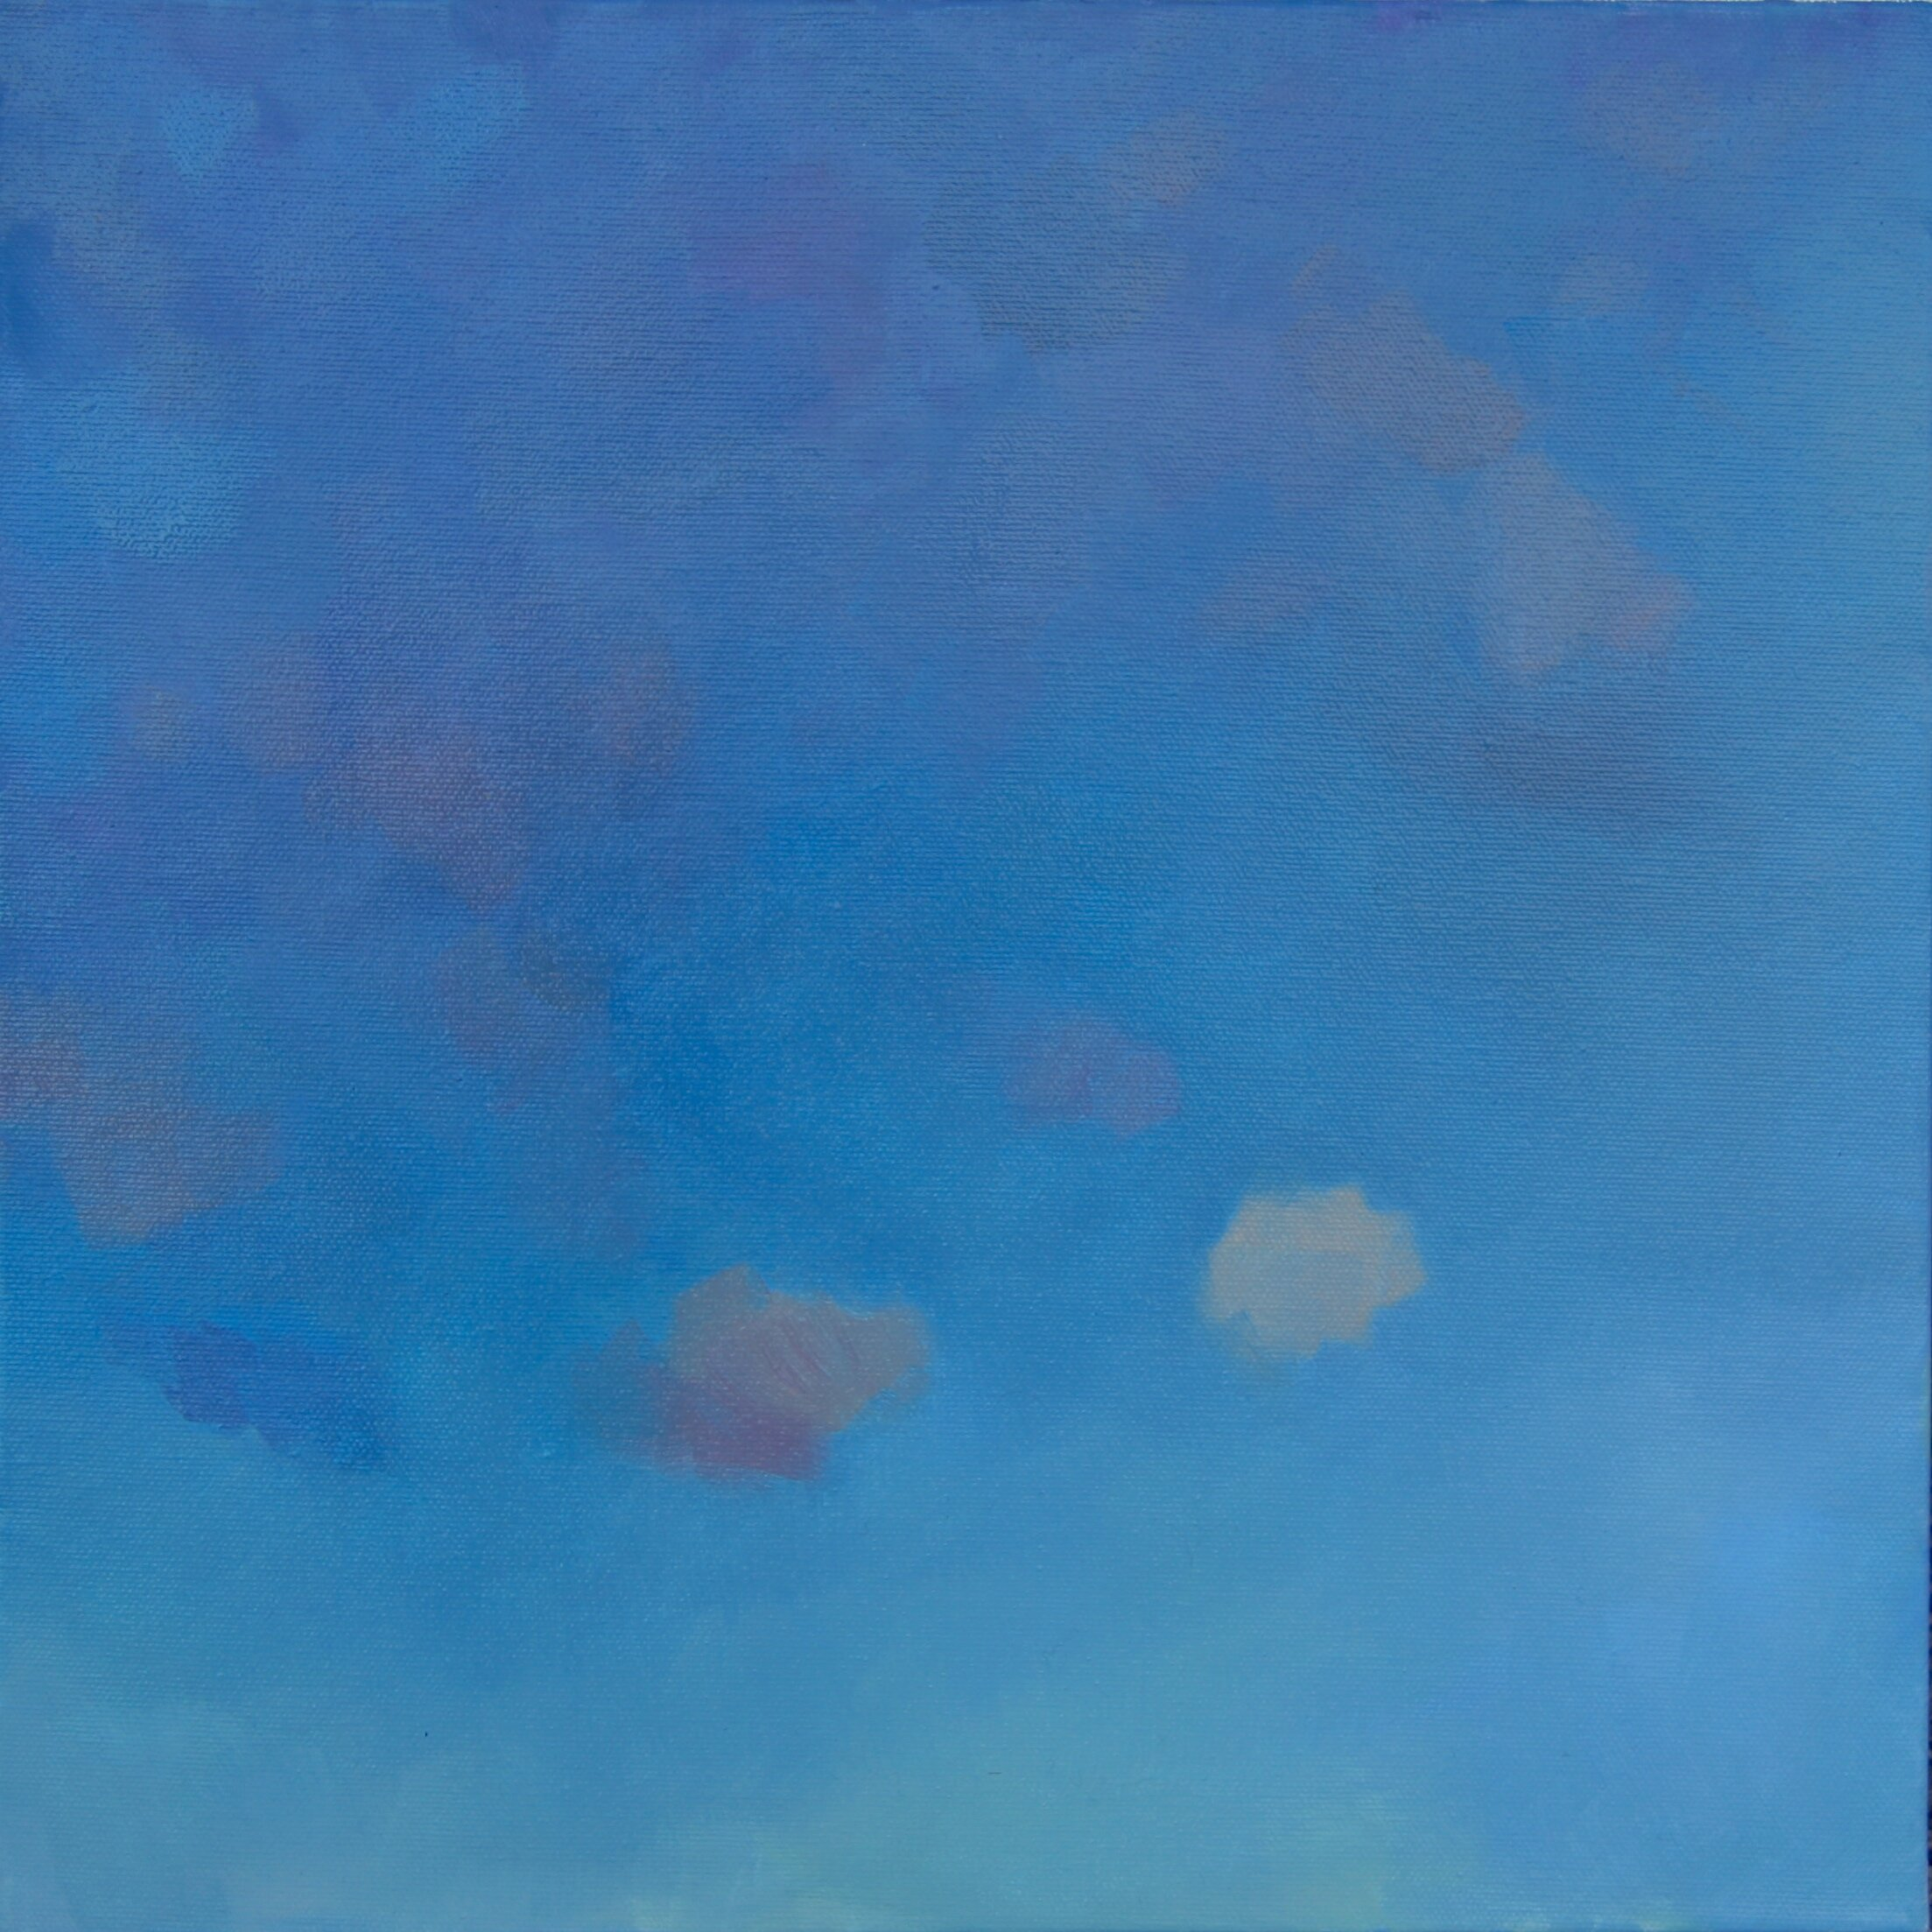 """'Dusk'  2015  14"""" x 14""""  water soluble oil on canvas  sold"""